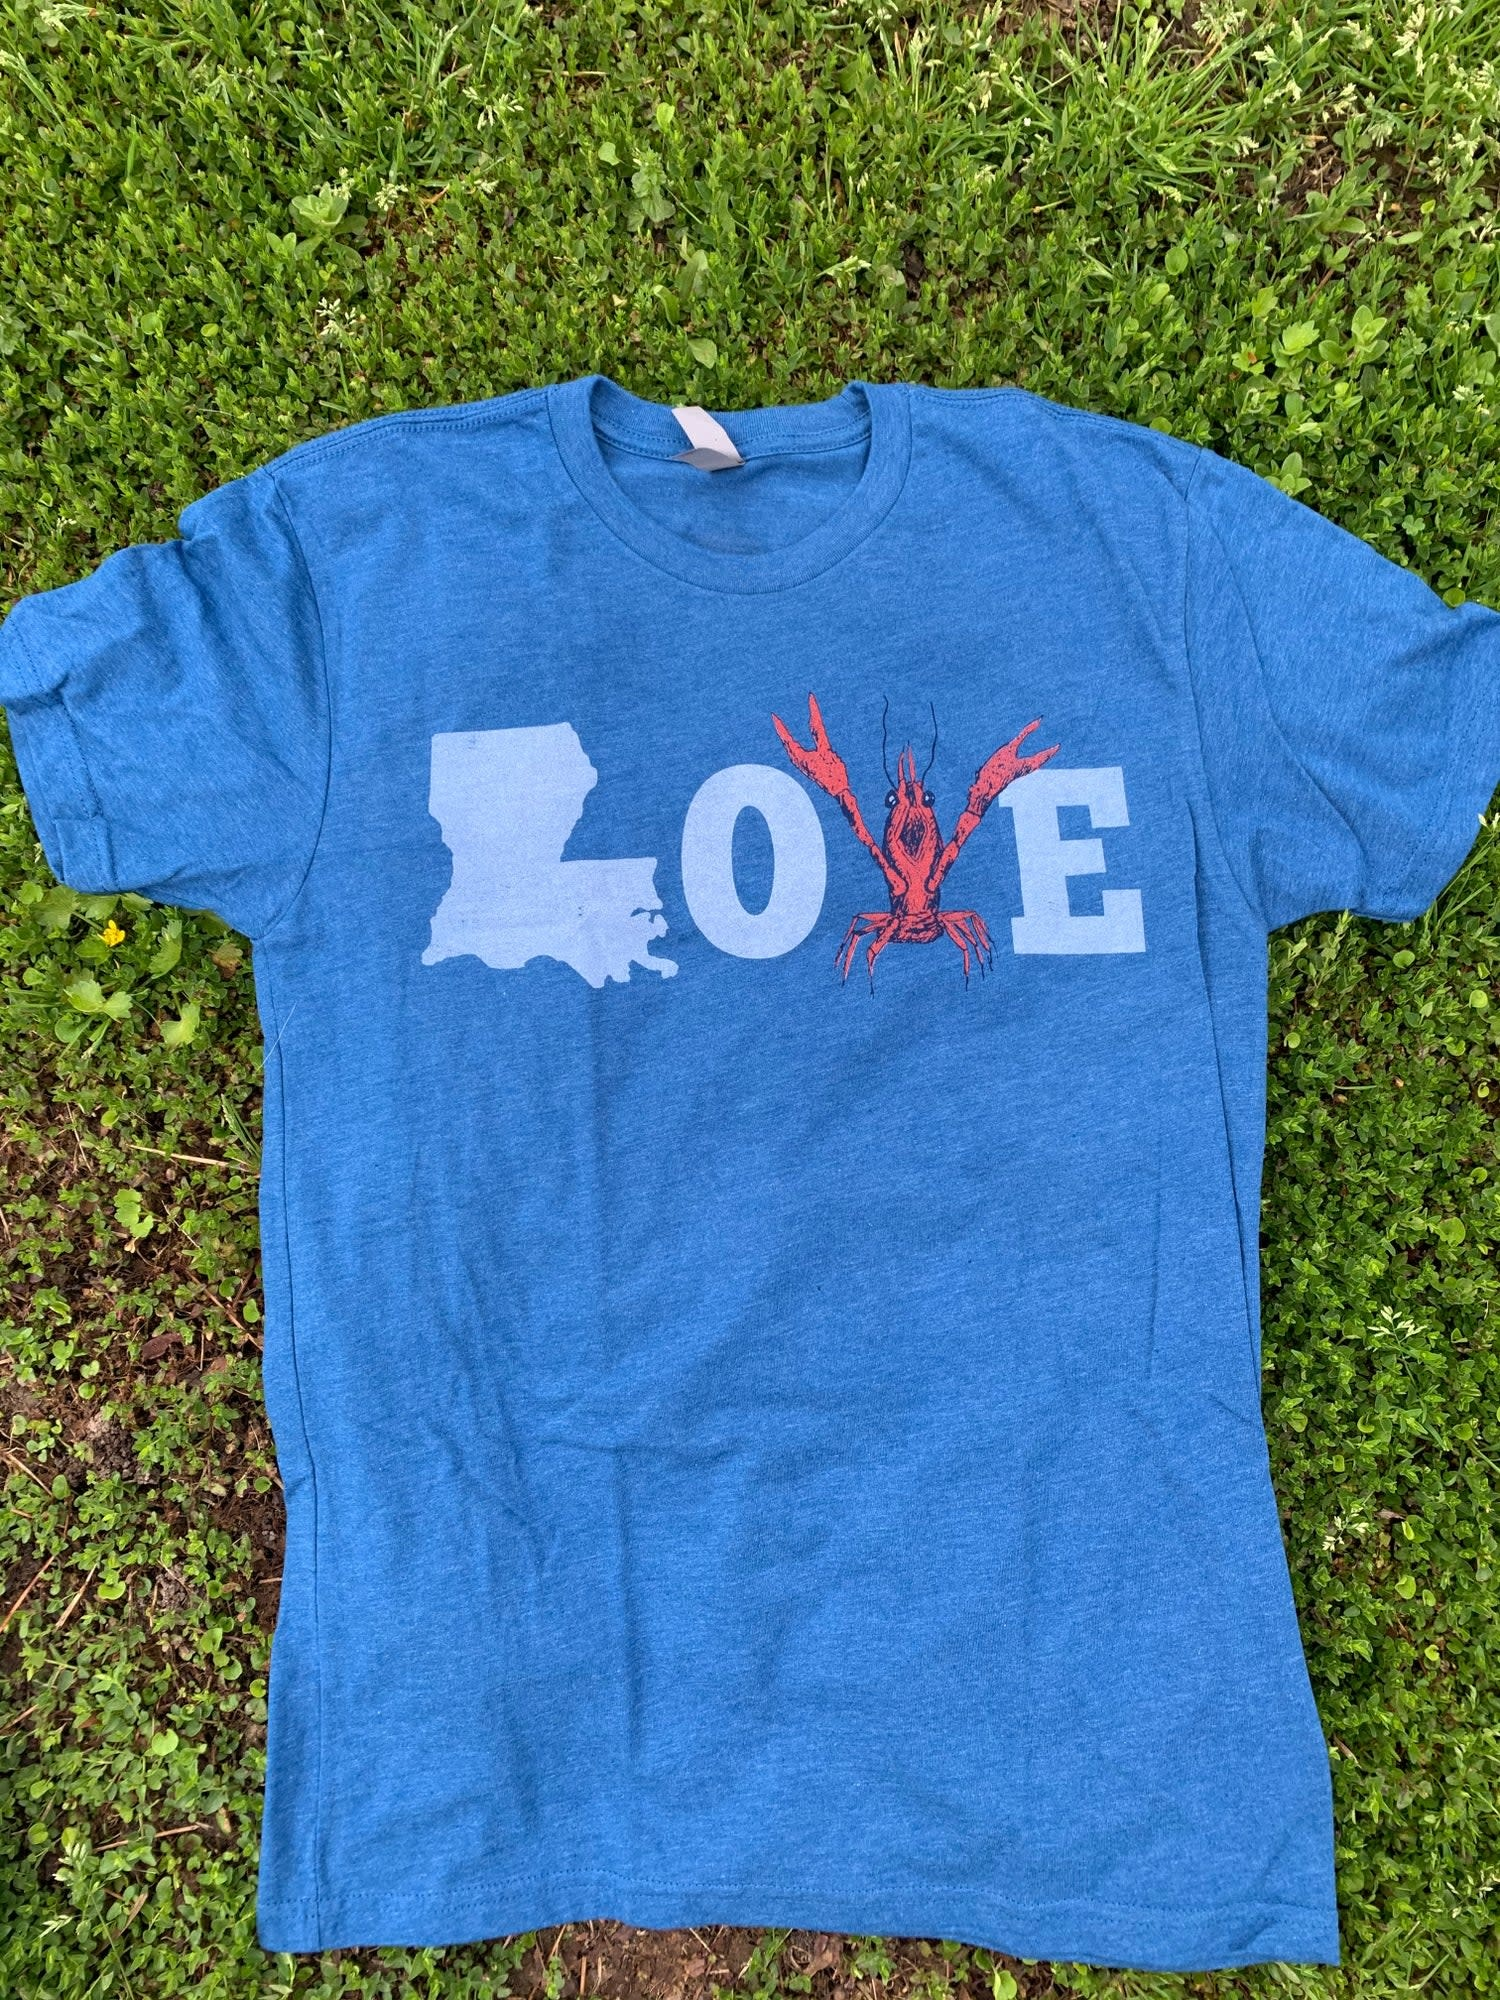 Mr Ps Tees Adult LOVE Blue Crawfish T-Shirt